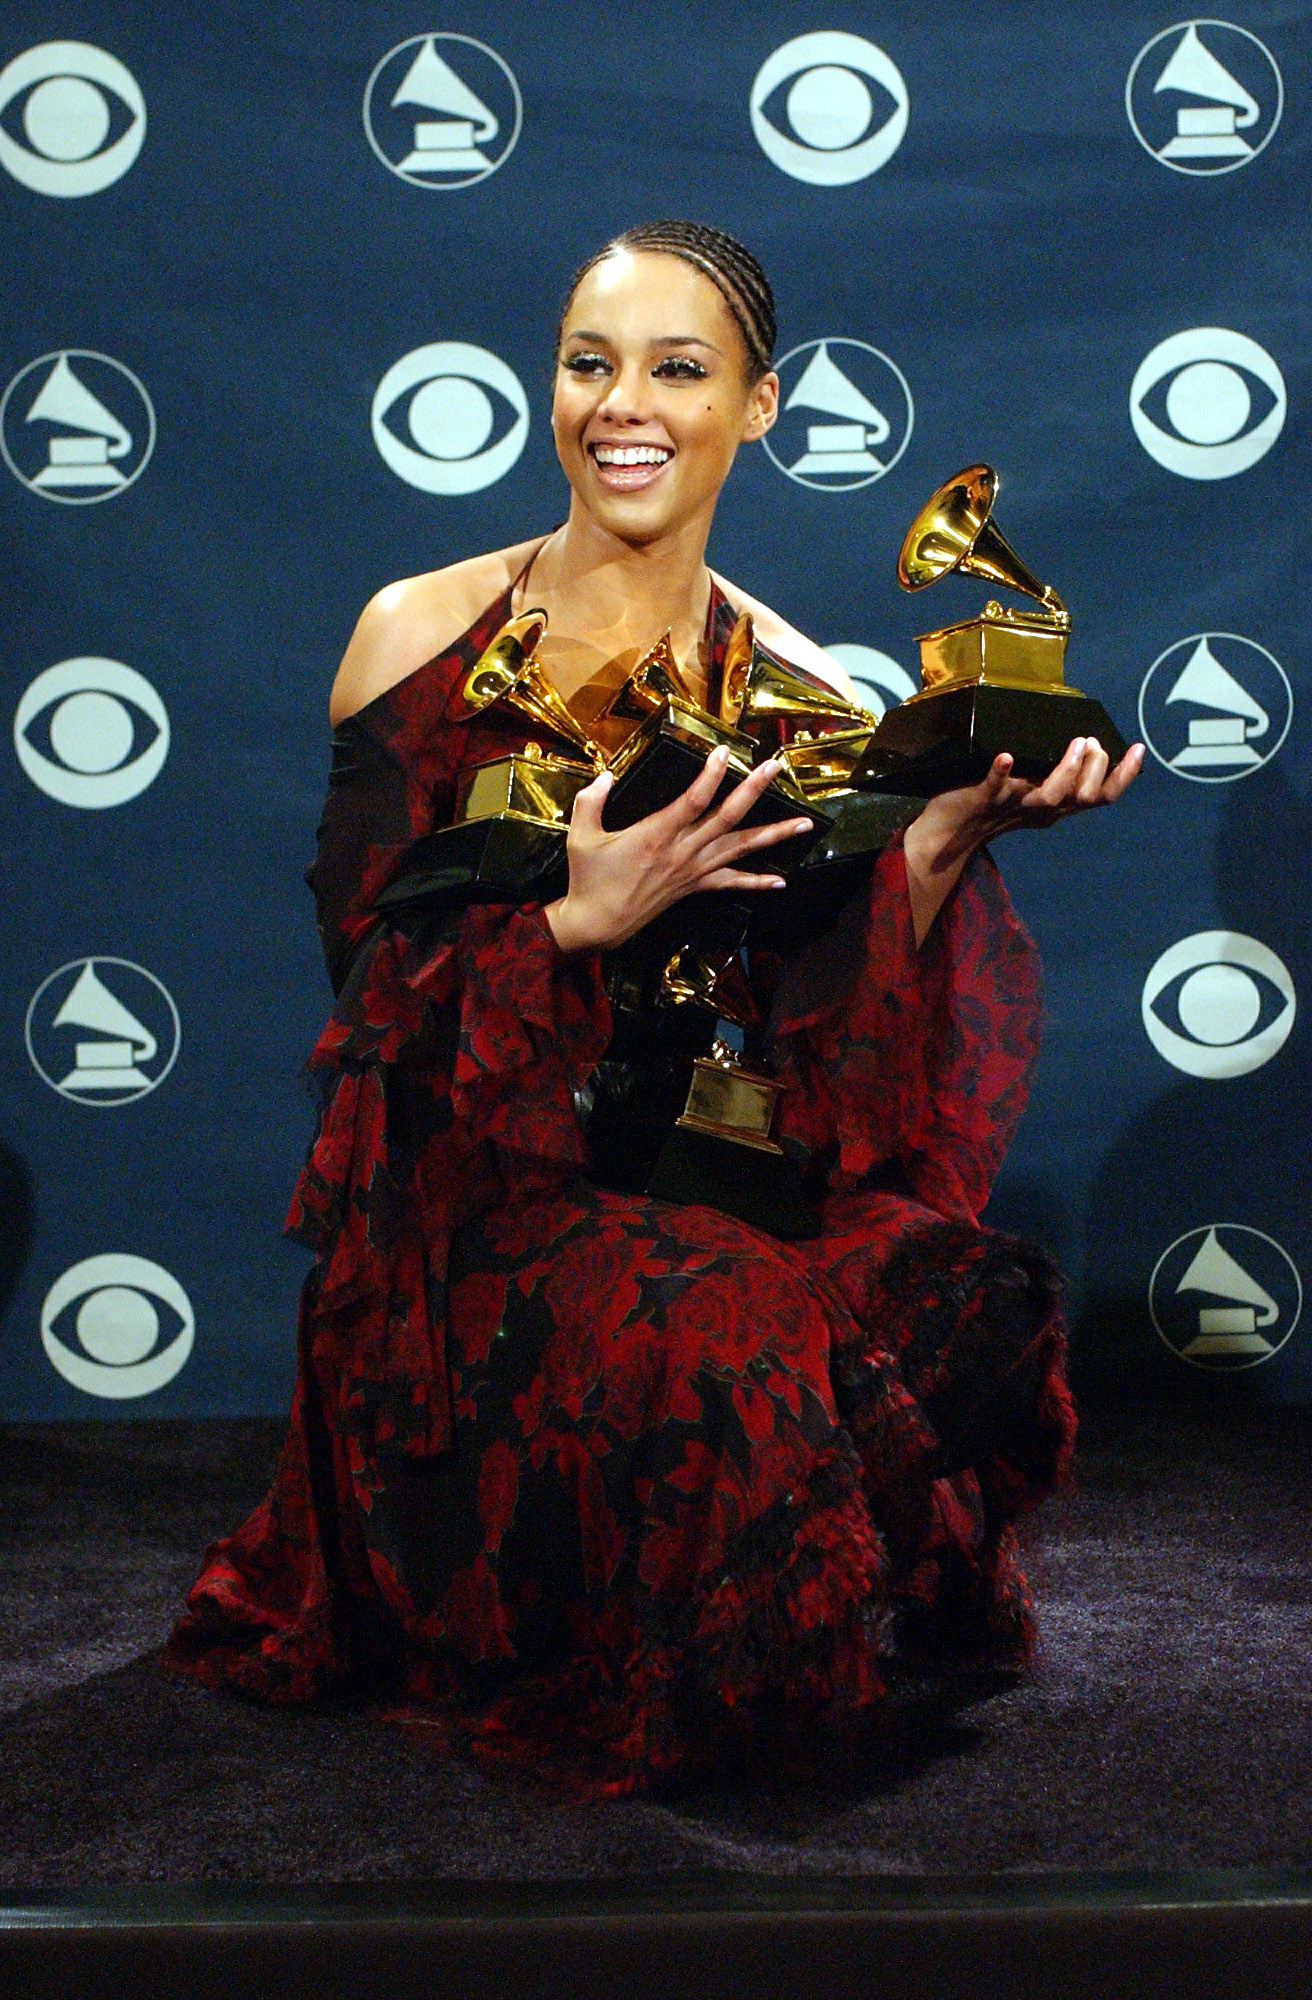 She beat out India Arie, Nelly Furtado, David Gray and Linkin Park.